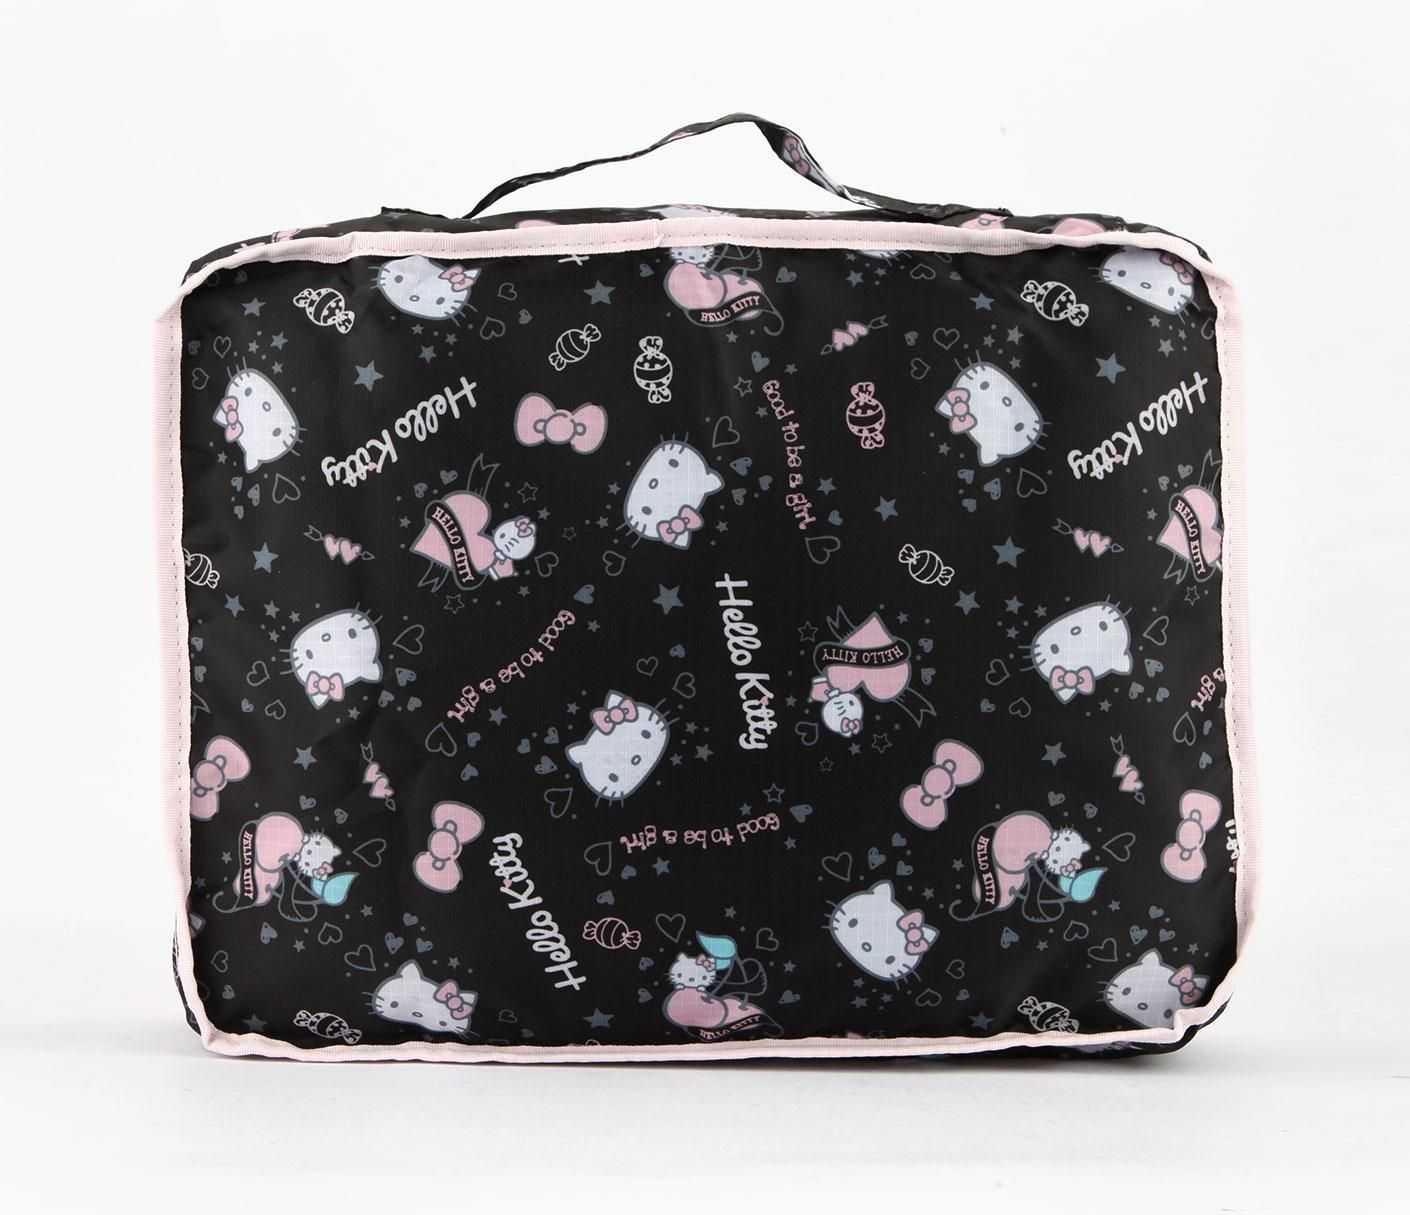 5d748e9ee0 Hello Kitty Packing Cube  Black Star Packing Cubes